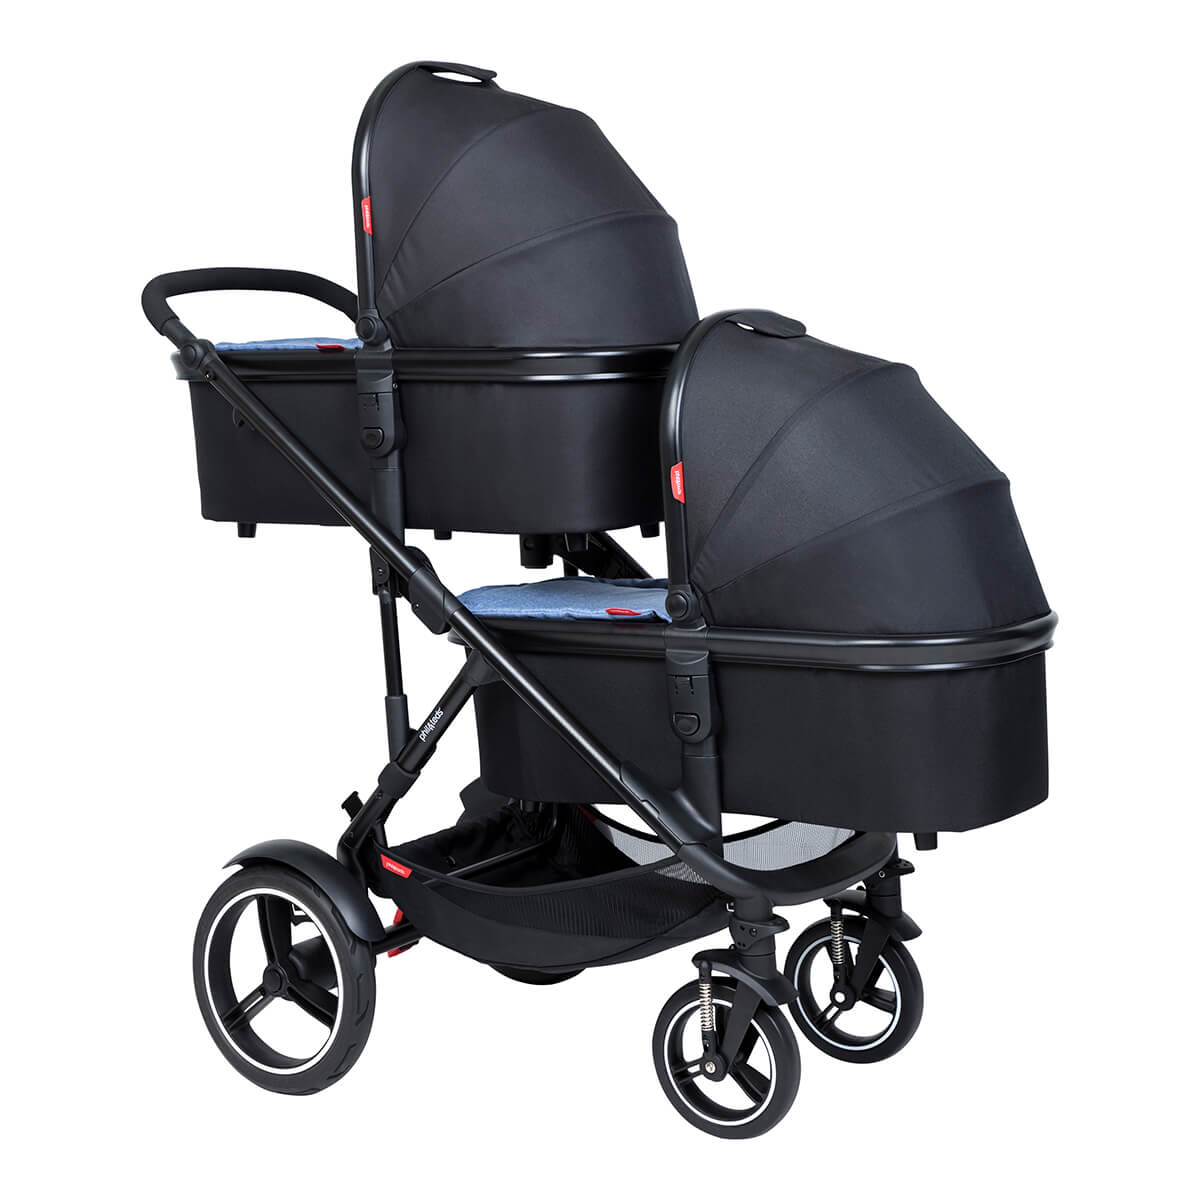 https://cdn.accentuate.io/4509913579597/19466204610754/philteds-voyager-inline-buggy-with-double-snug-carrycots-v1626485629863.jpg?1200x1200